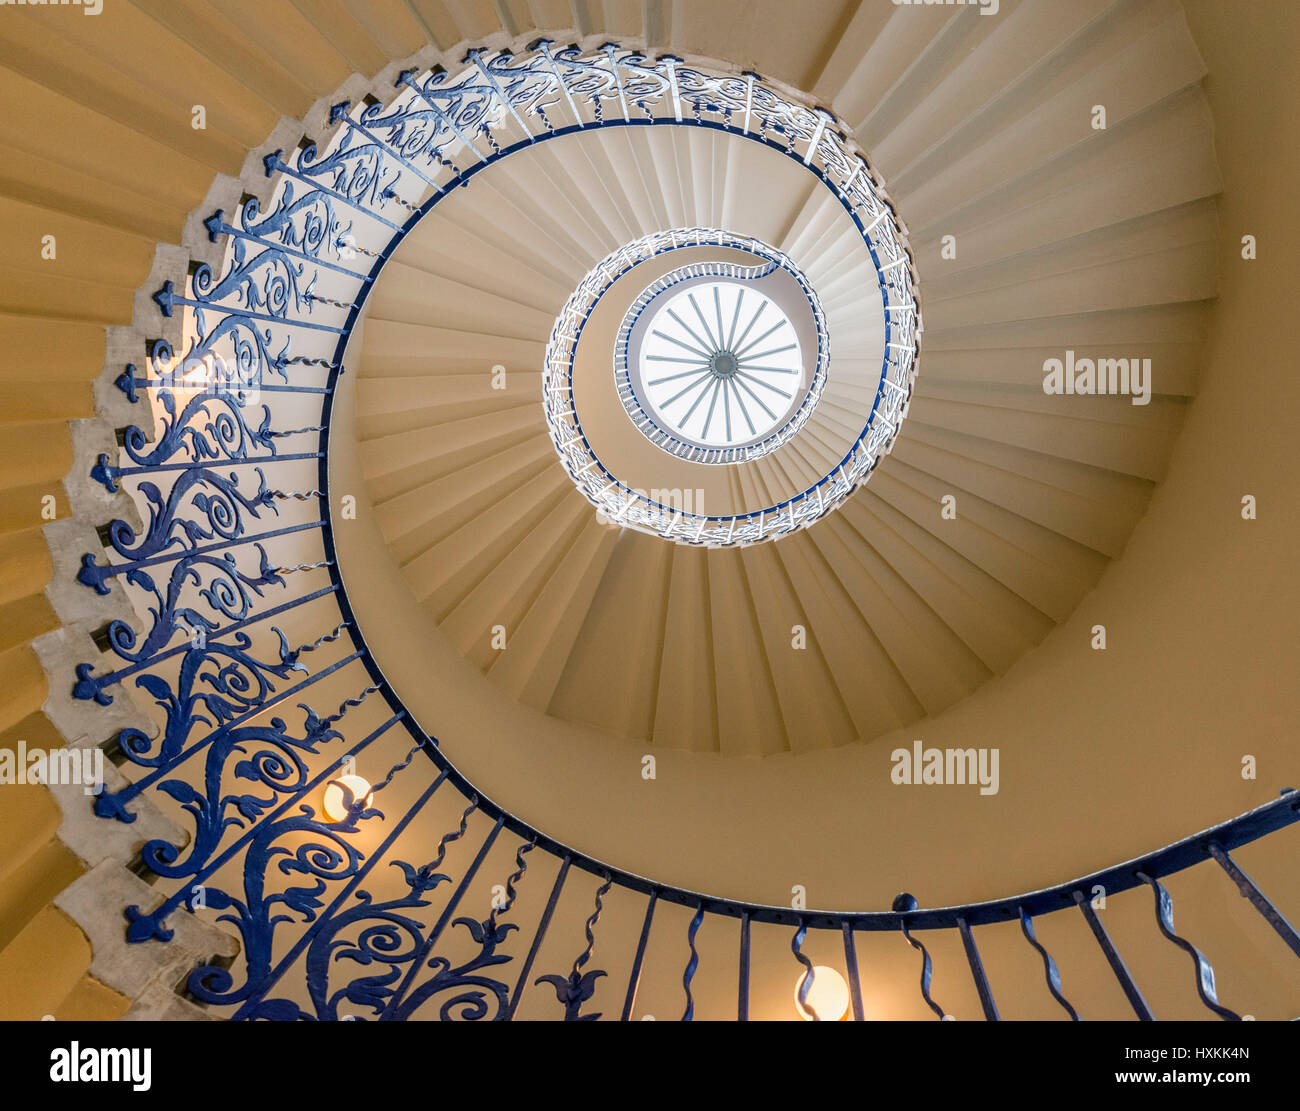 The Tulip Stairs in Queen's House, Greenwich, London, England, UK. The stairs are the first centrally unsupported - Stock Image